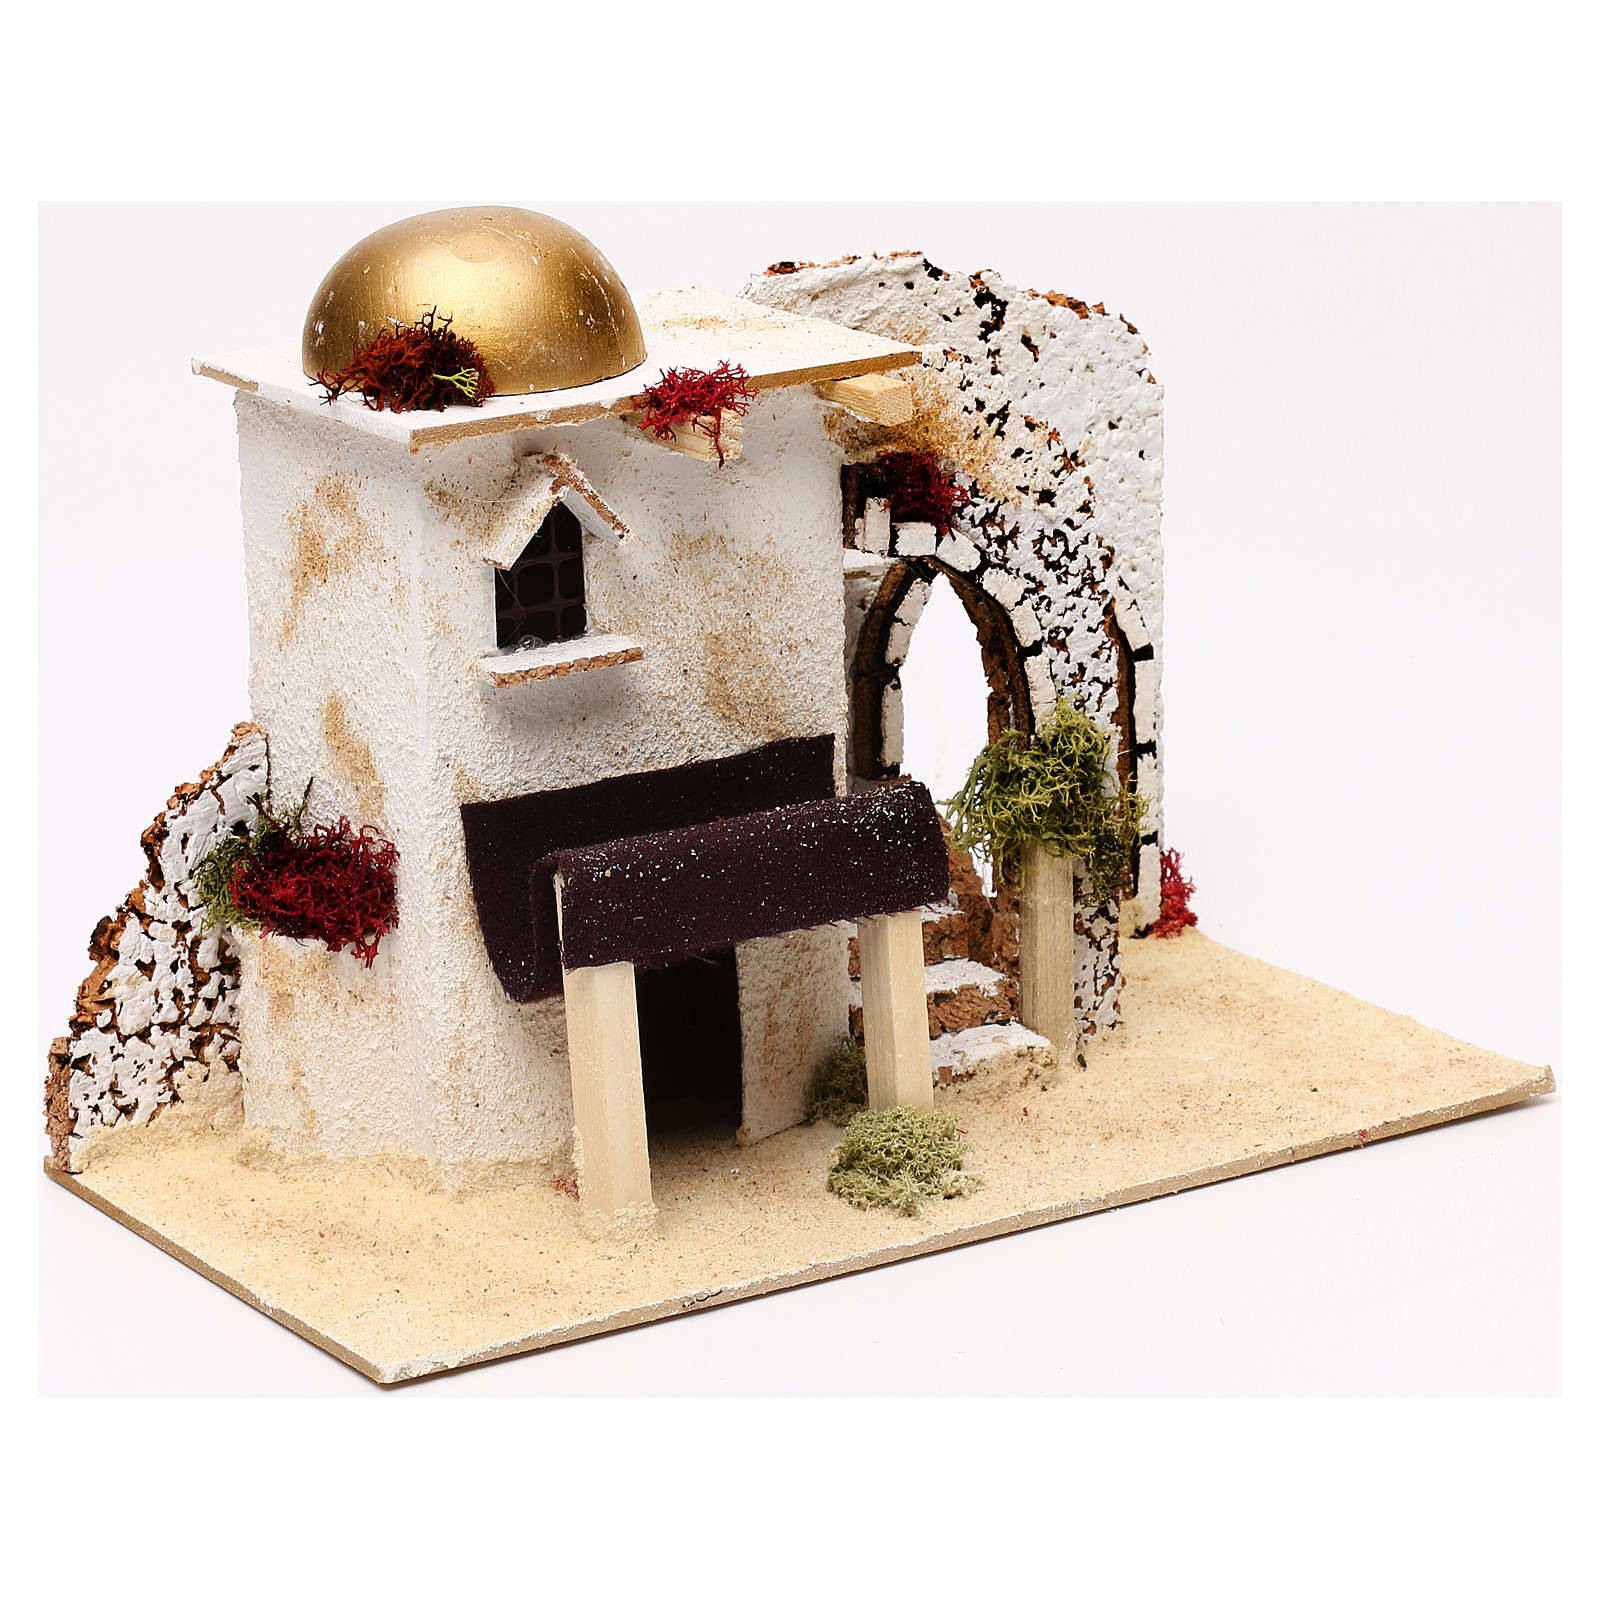 Arabic style house with porch entrance 20x30x15 cm for Nativity scenes of 5 cm 4